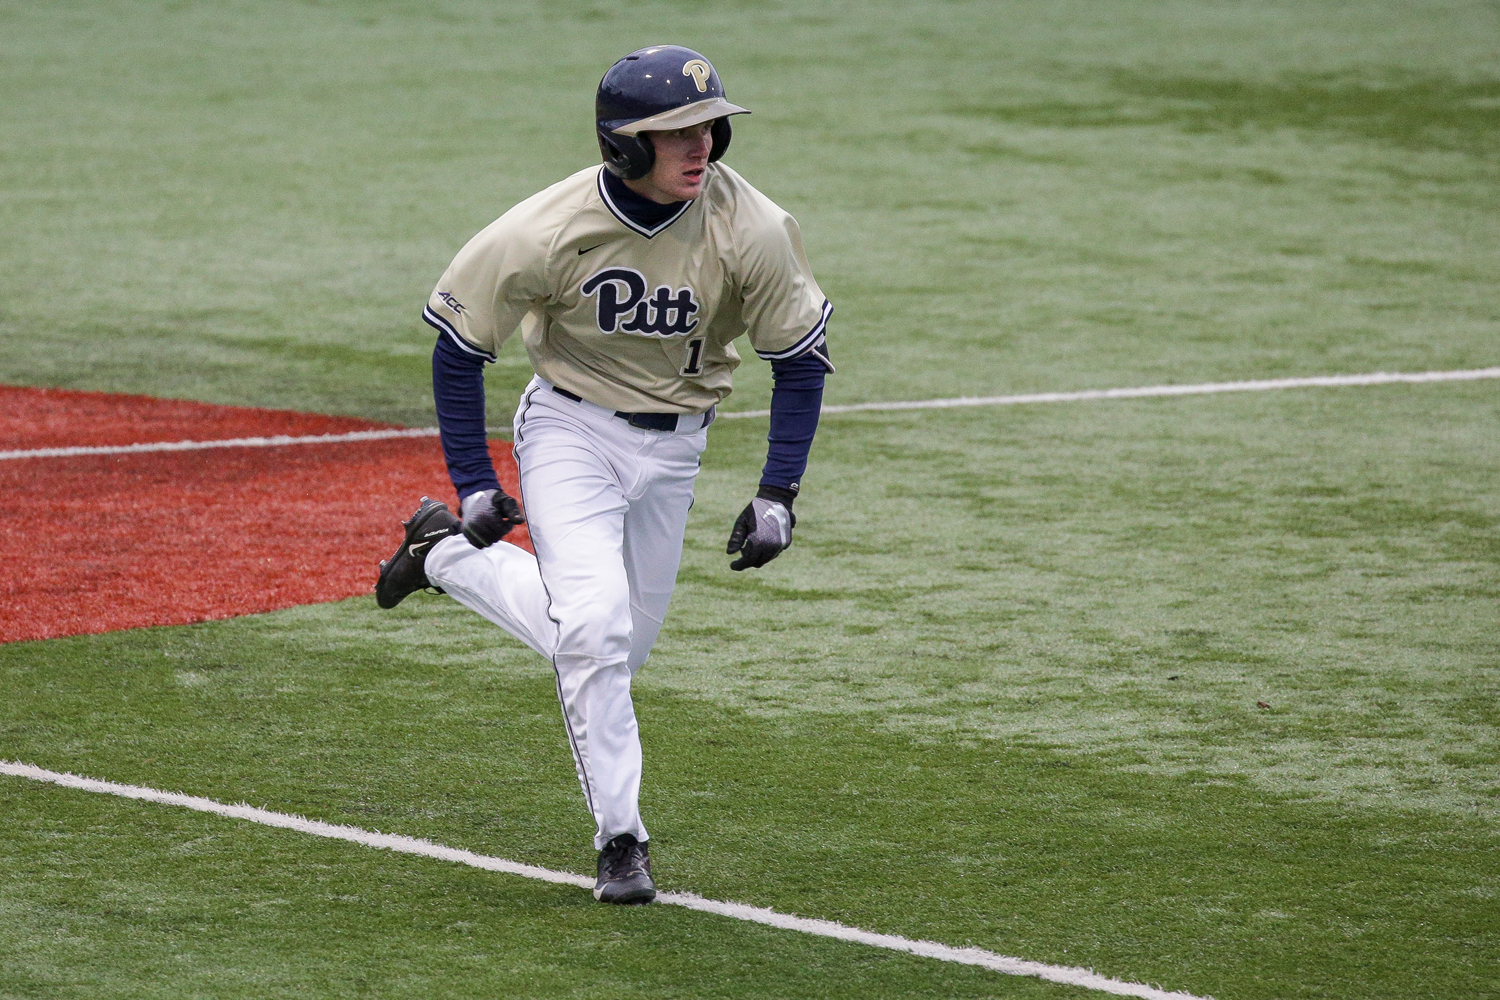 Junior outfielder Nico Popa (1) put the first points on the board with a home run at Pitt's 9-4 loss to West Virginia on Tuesday evening.